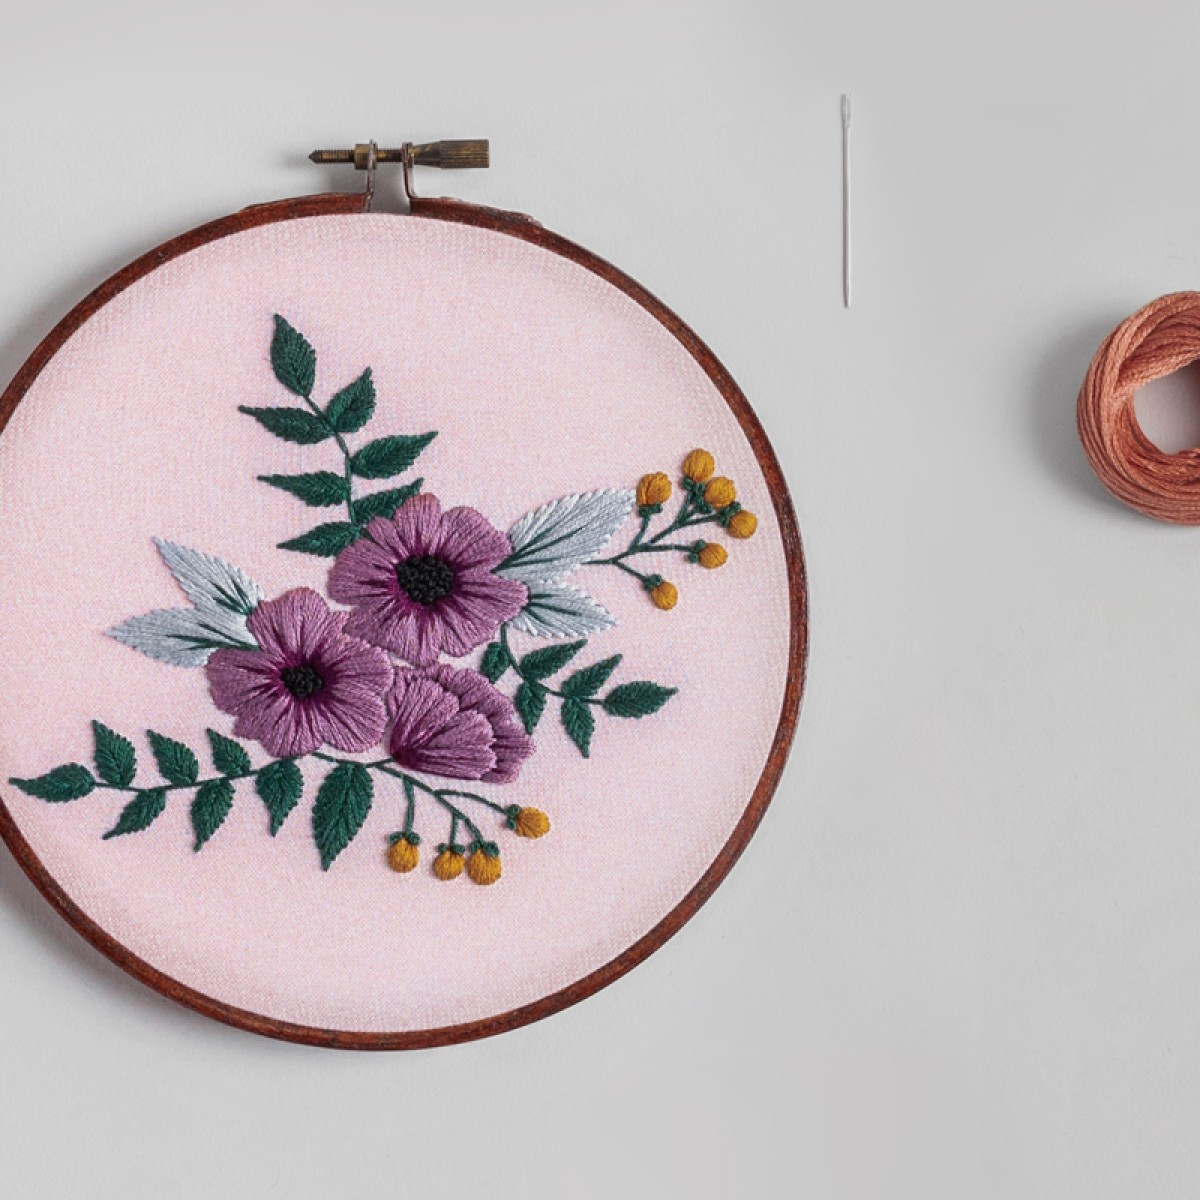 How To Make Your Own Embroidery Pattern Embroidery Watch Learn Bluprint